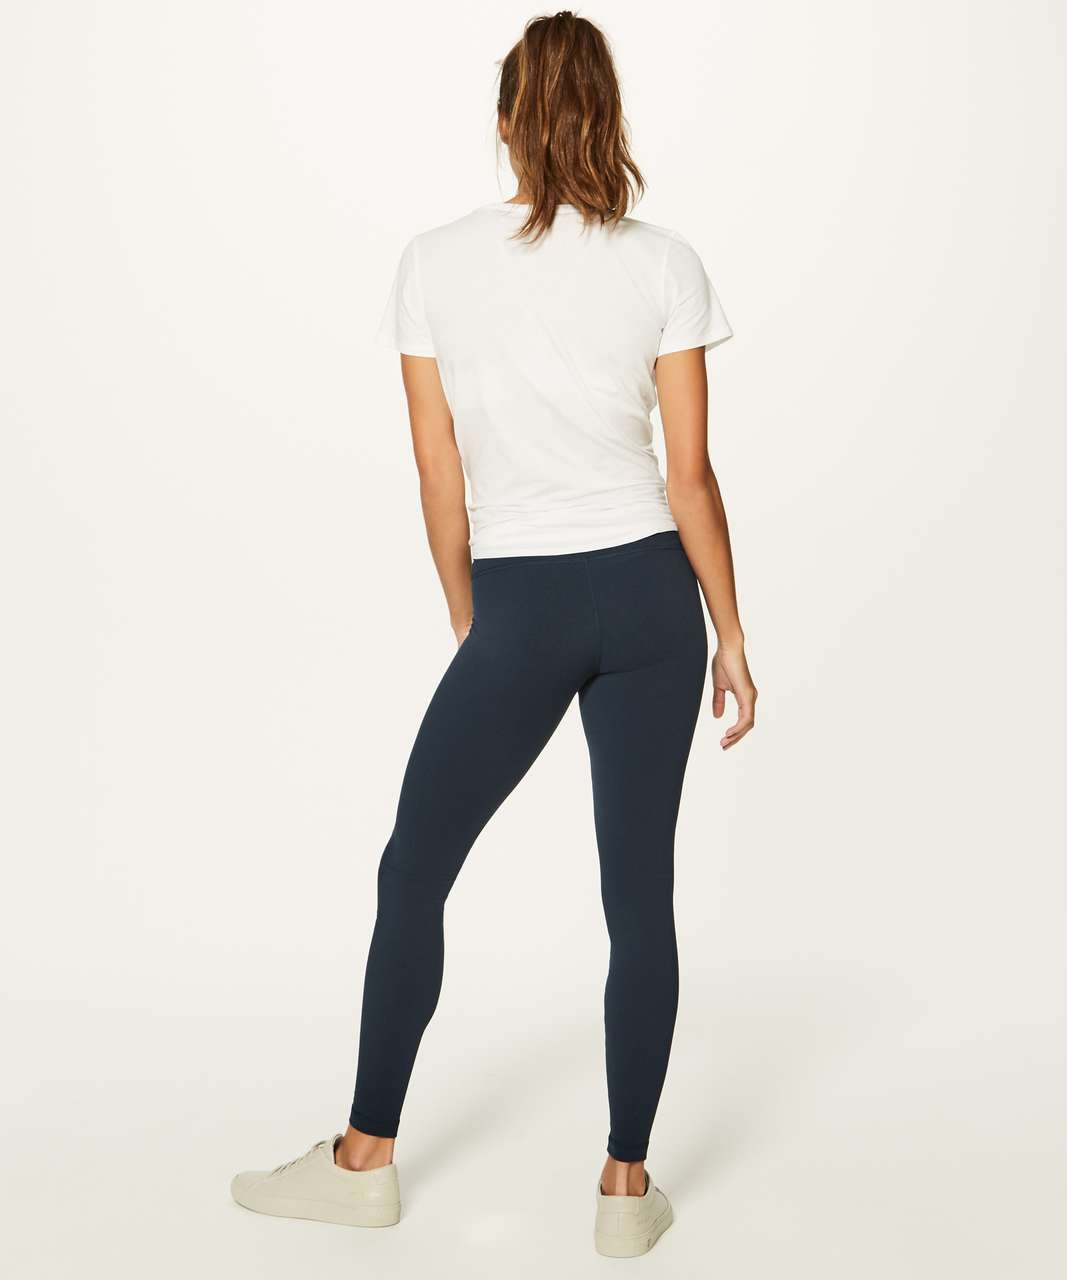 "Lululemon Wunder Under Hi-Rise Tight (Full-On Luon 28"") - Nocturnal Teal"